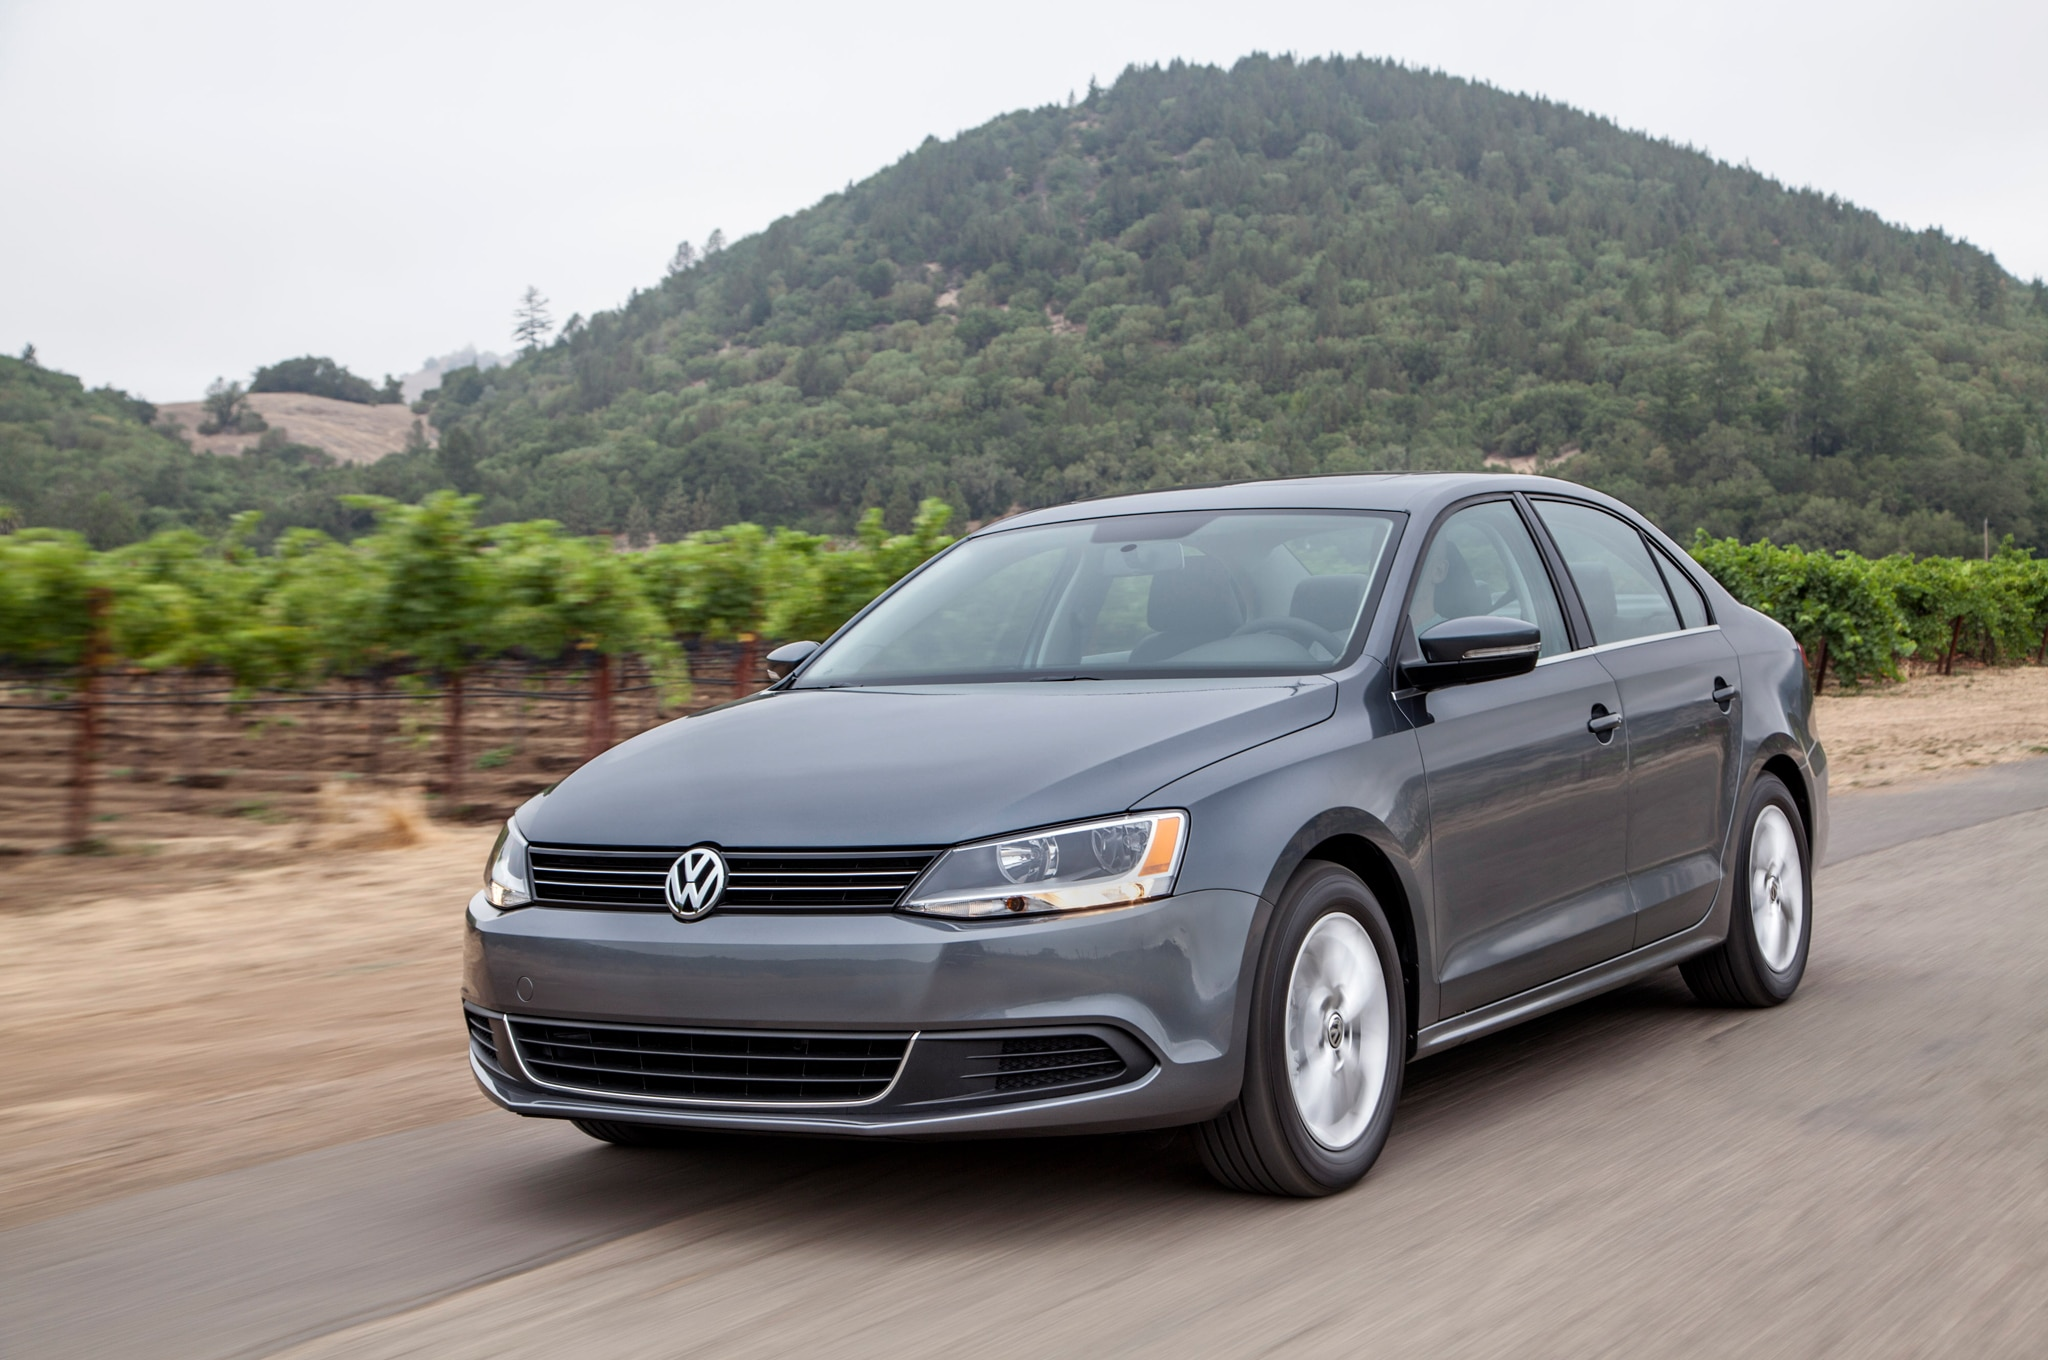 2014 Volkswagen Jetta Front Three Quarters1